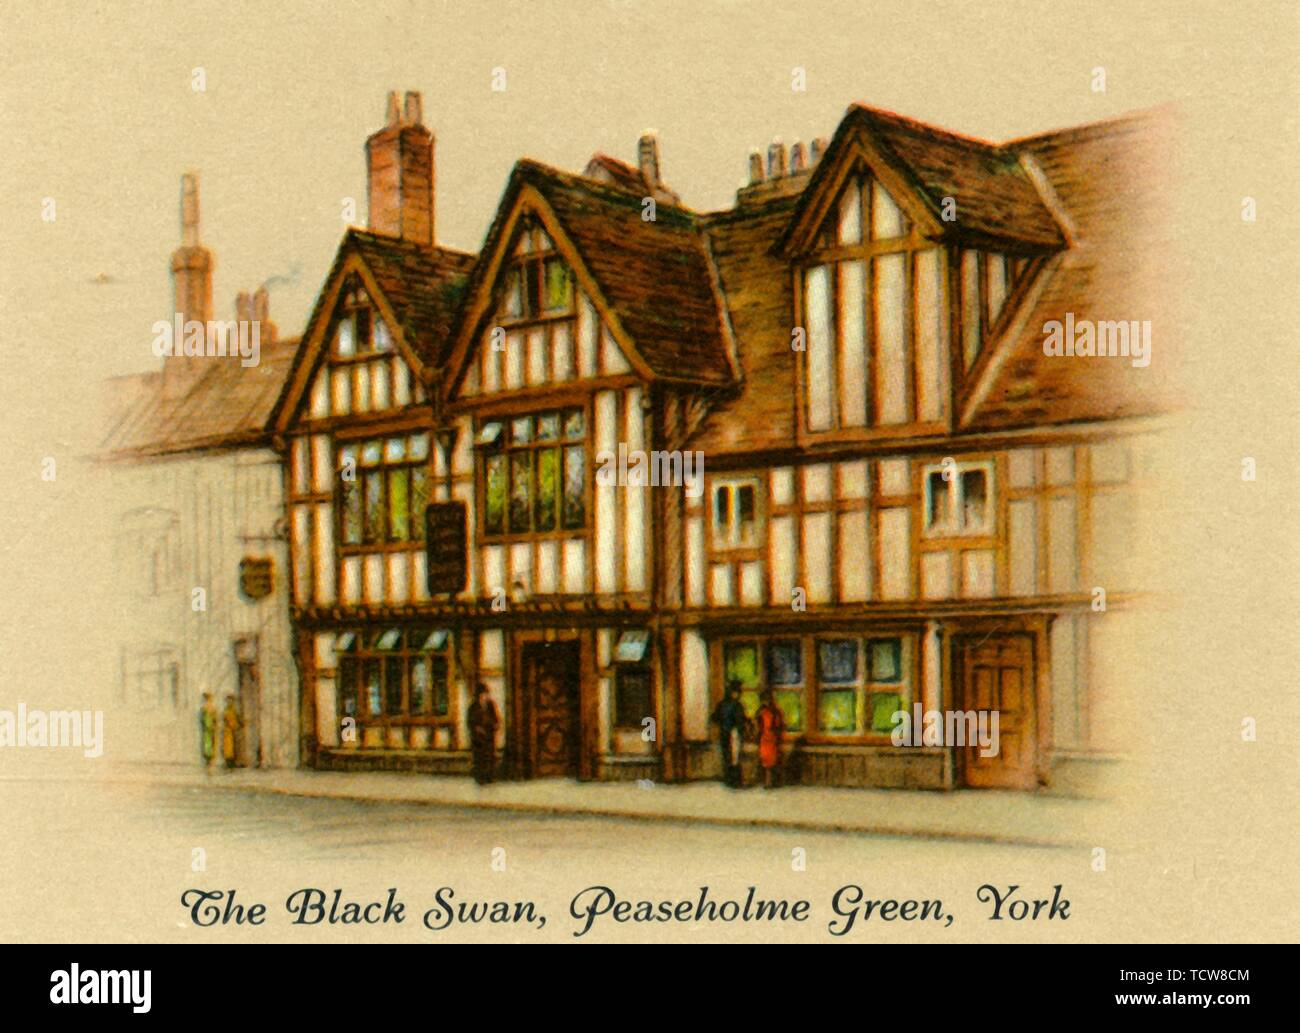 """'The Black Swan, Peaseholme Green, York', 1936. The Black Swan inn, York, a timber framed building dating from 15th century. From """"Old Inns - A Series of 40"""", 1936. [W. D. & H. O. Wills, 1936] - Stock Image"""